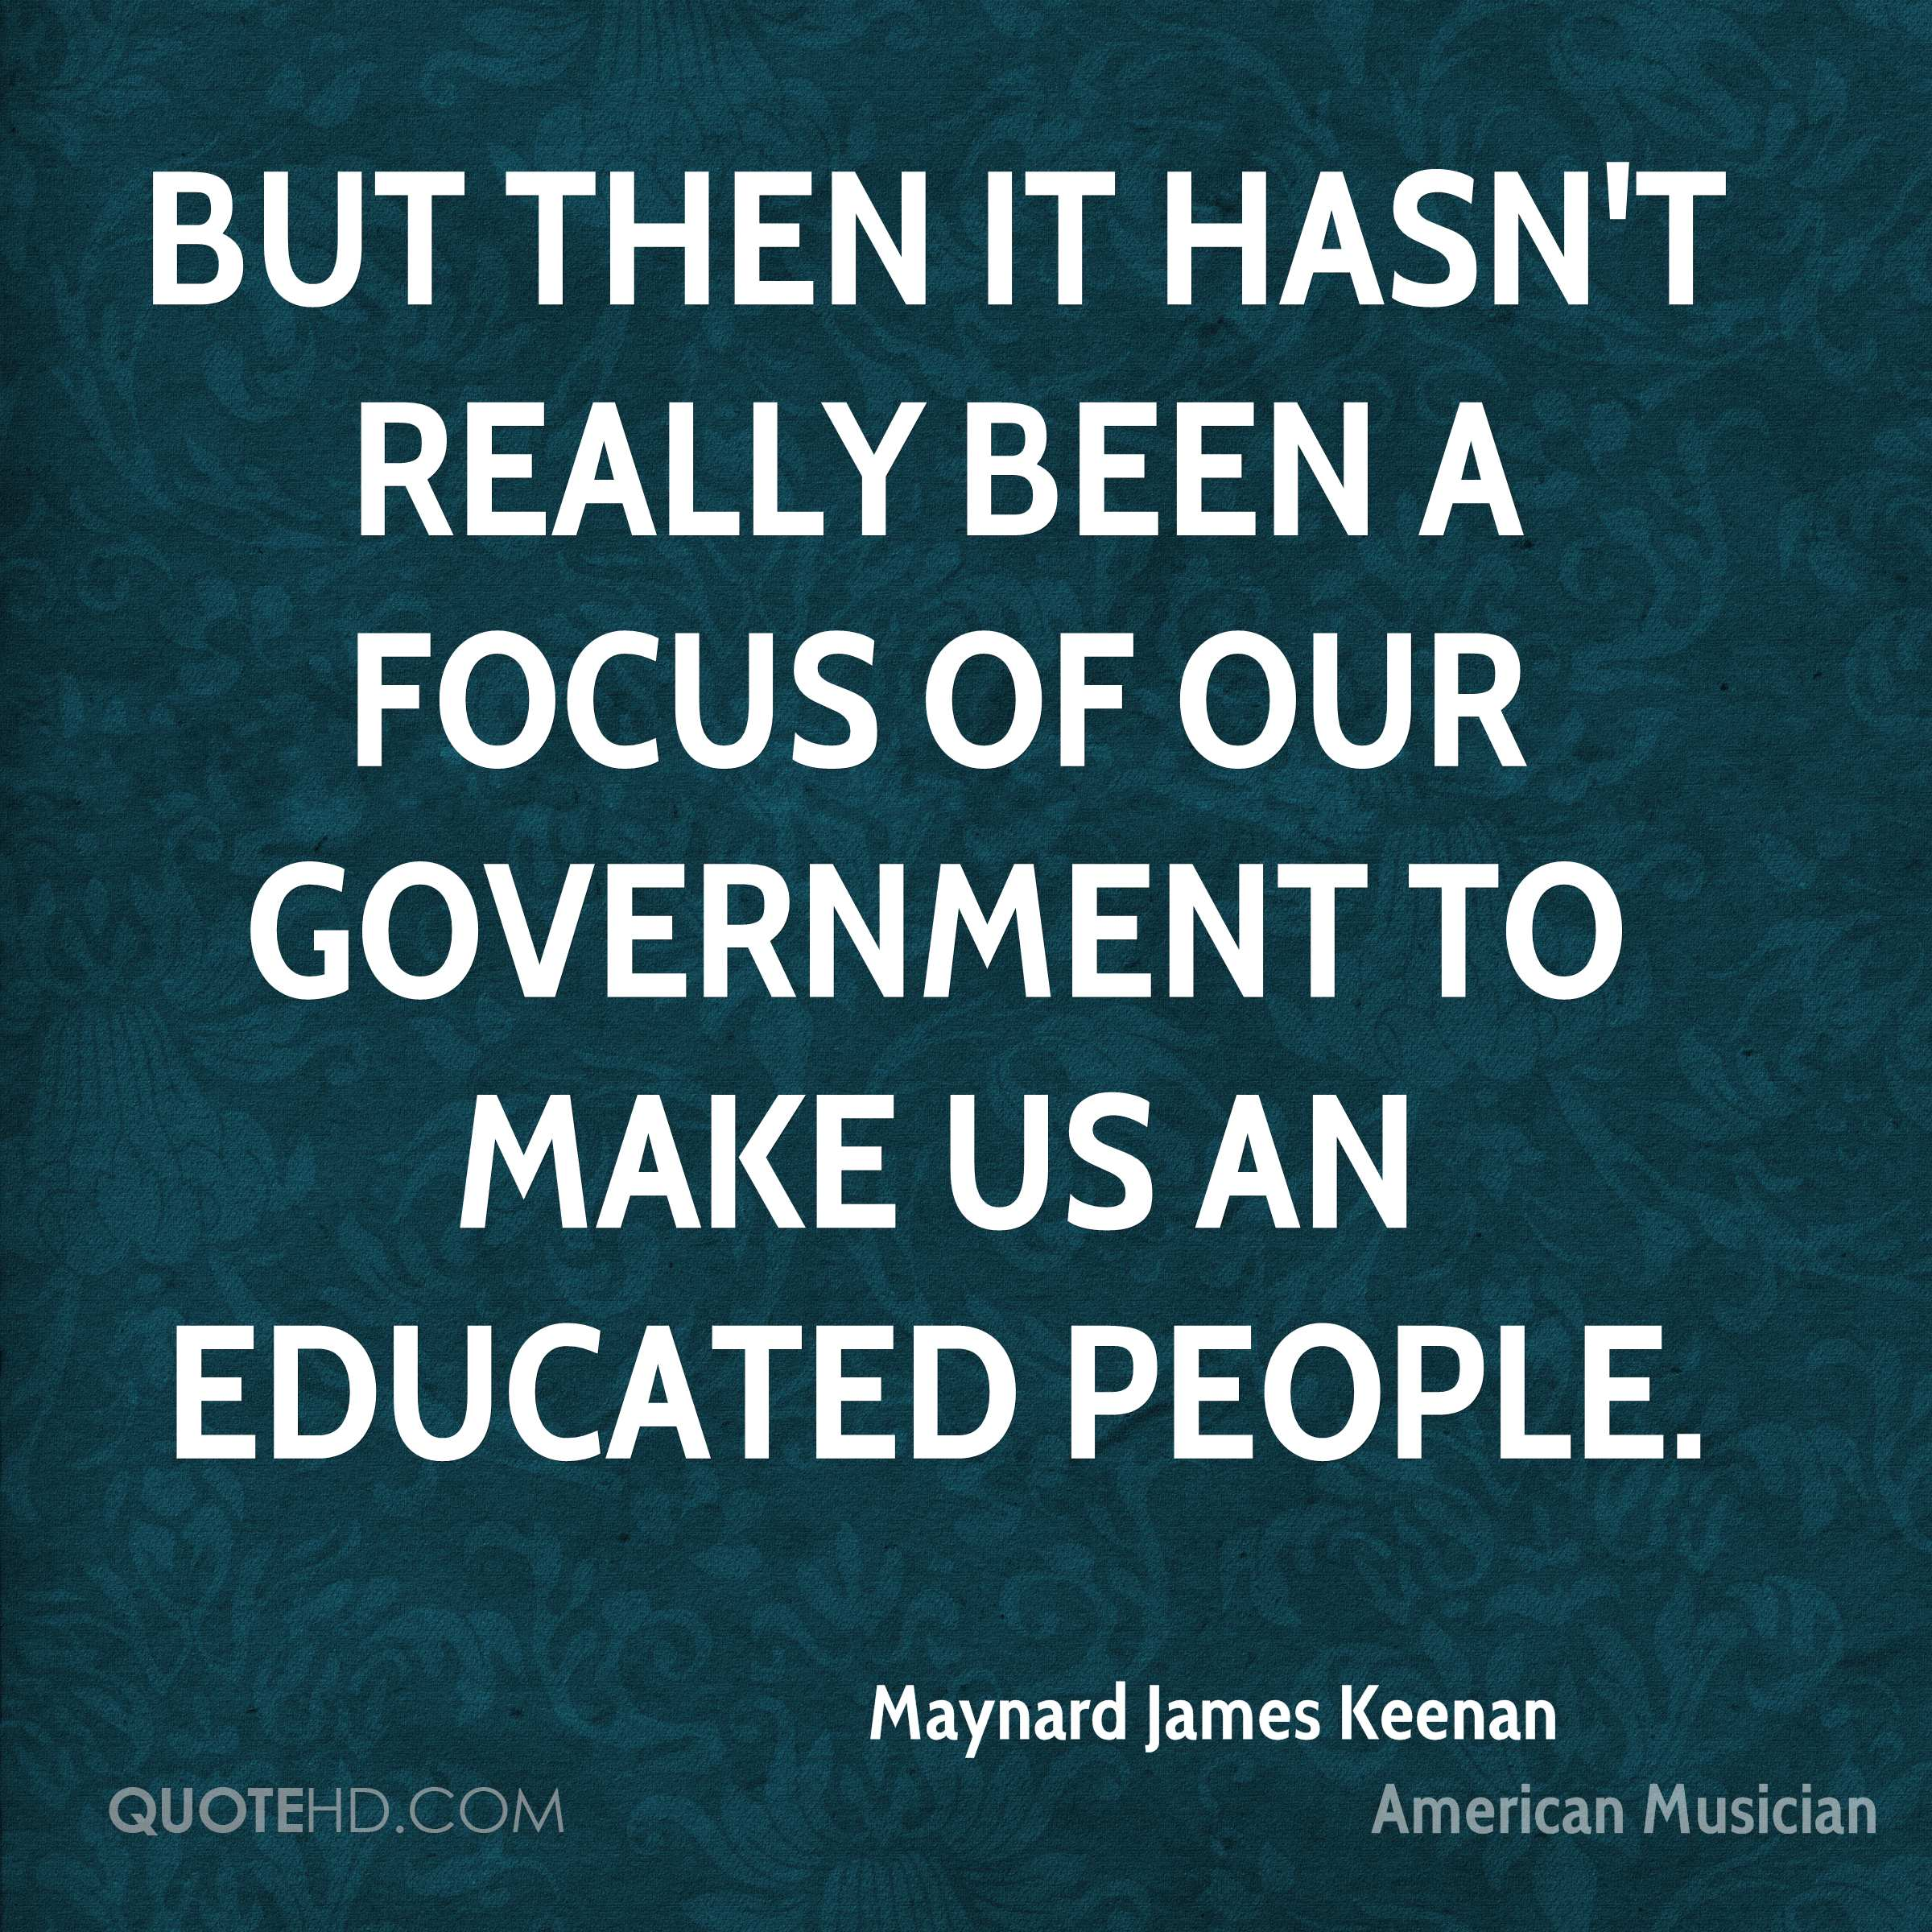 But then it hasn't really been a focus of our government to make us an educated people.